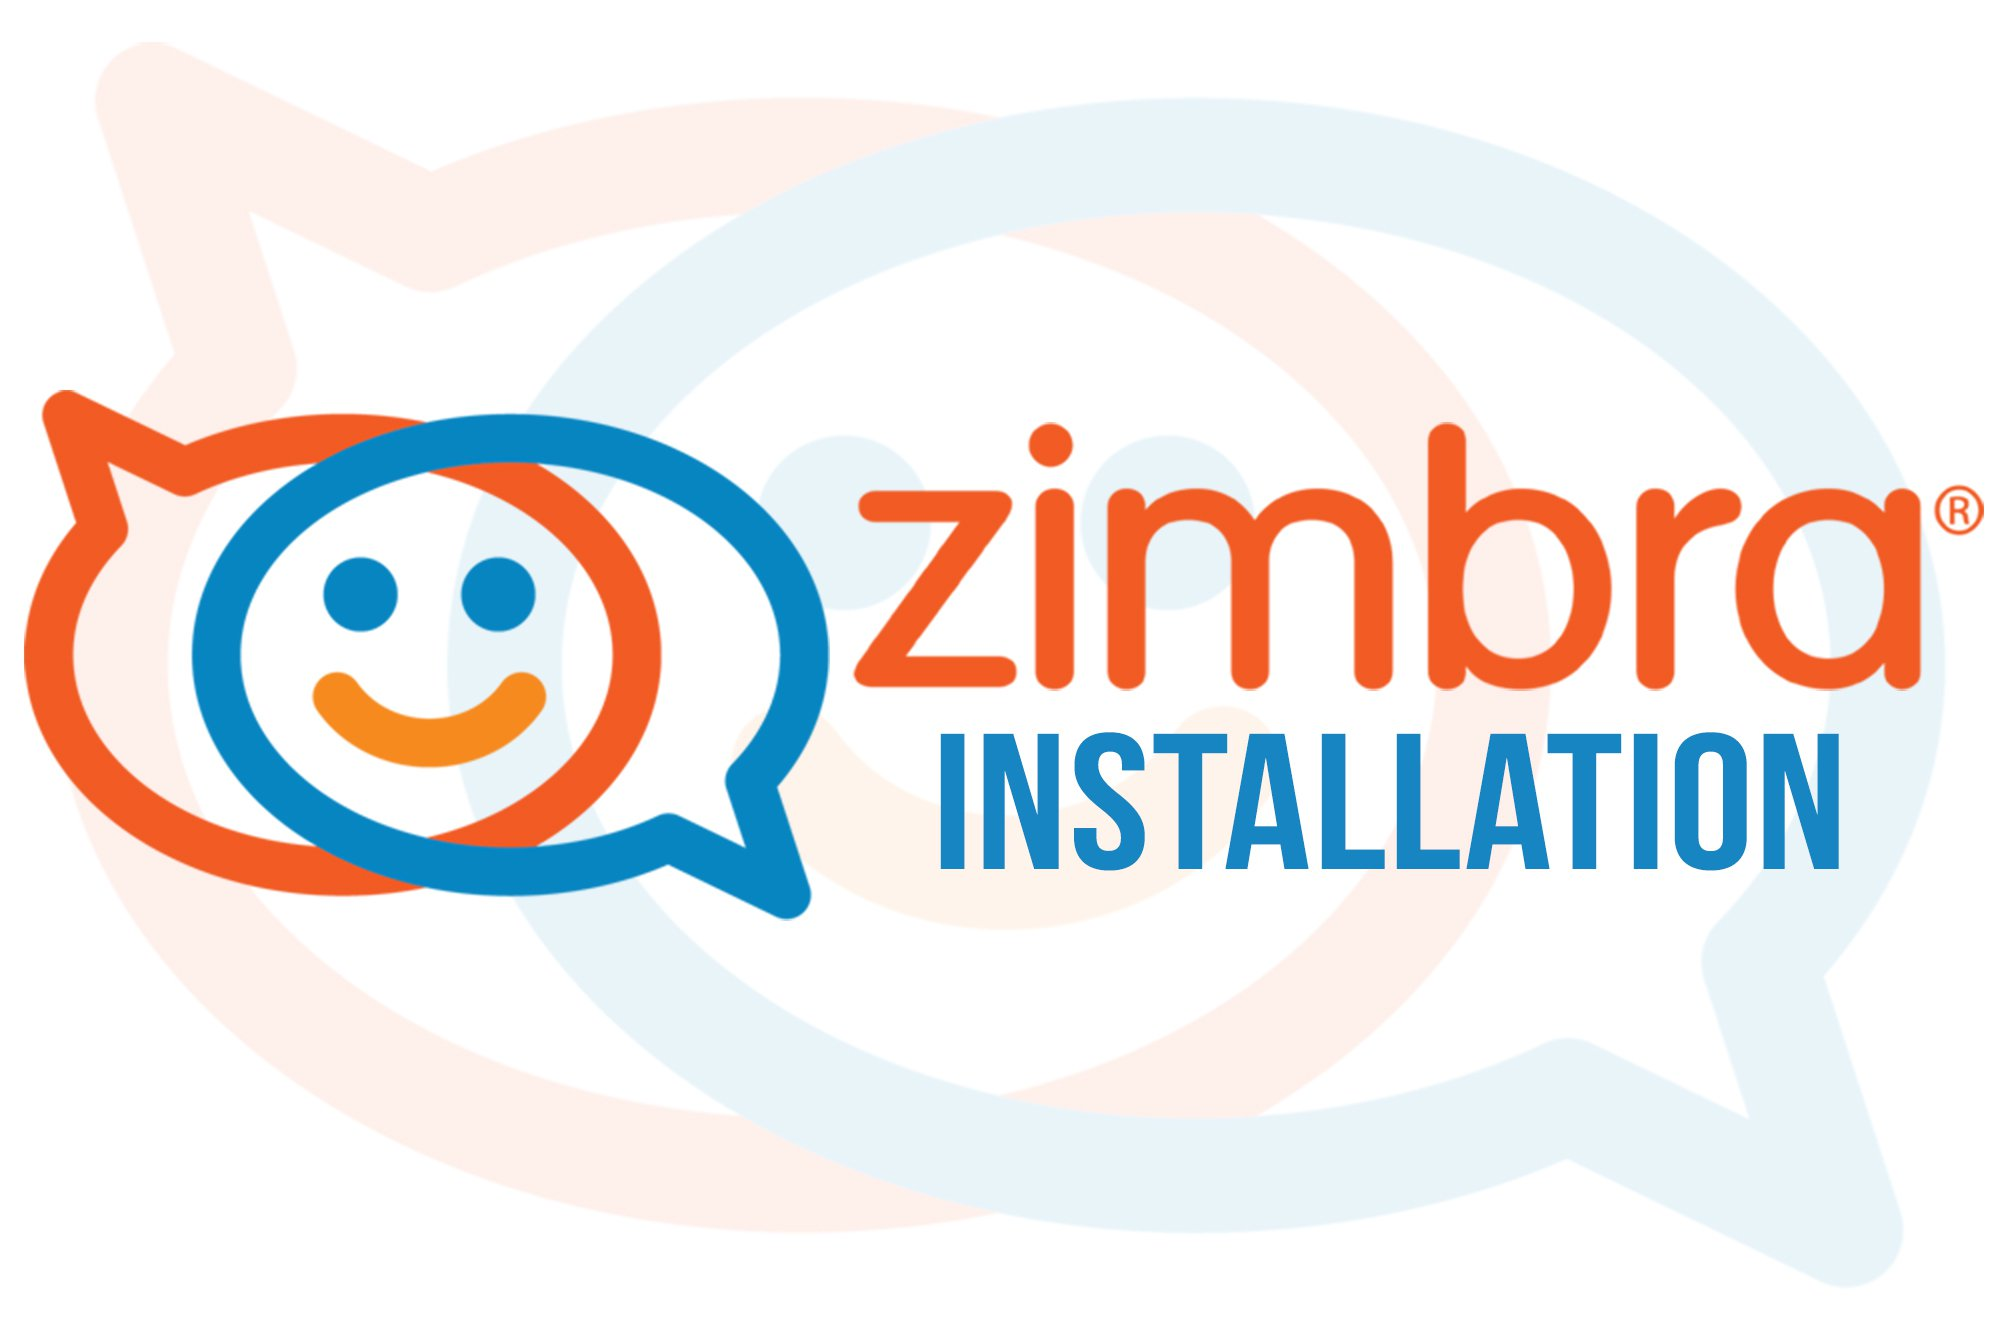 Zimbra Collaboration - Installation